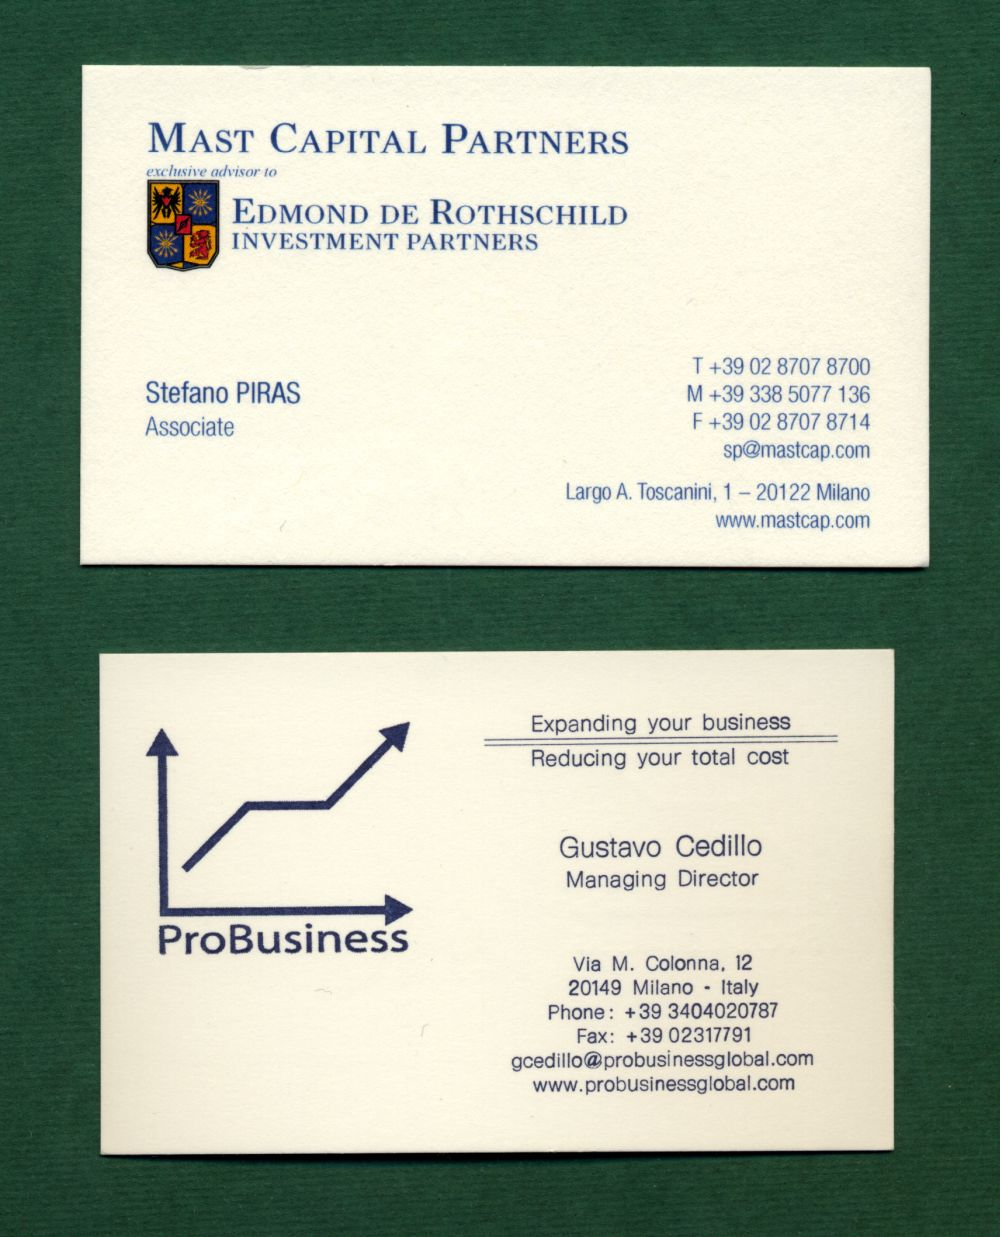 Mckinsey Business Card Images Business Card Template